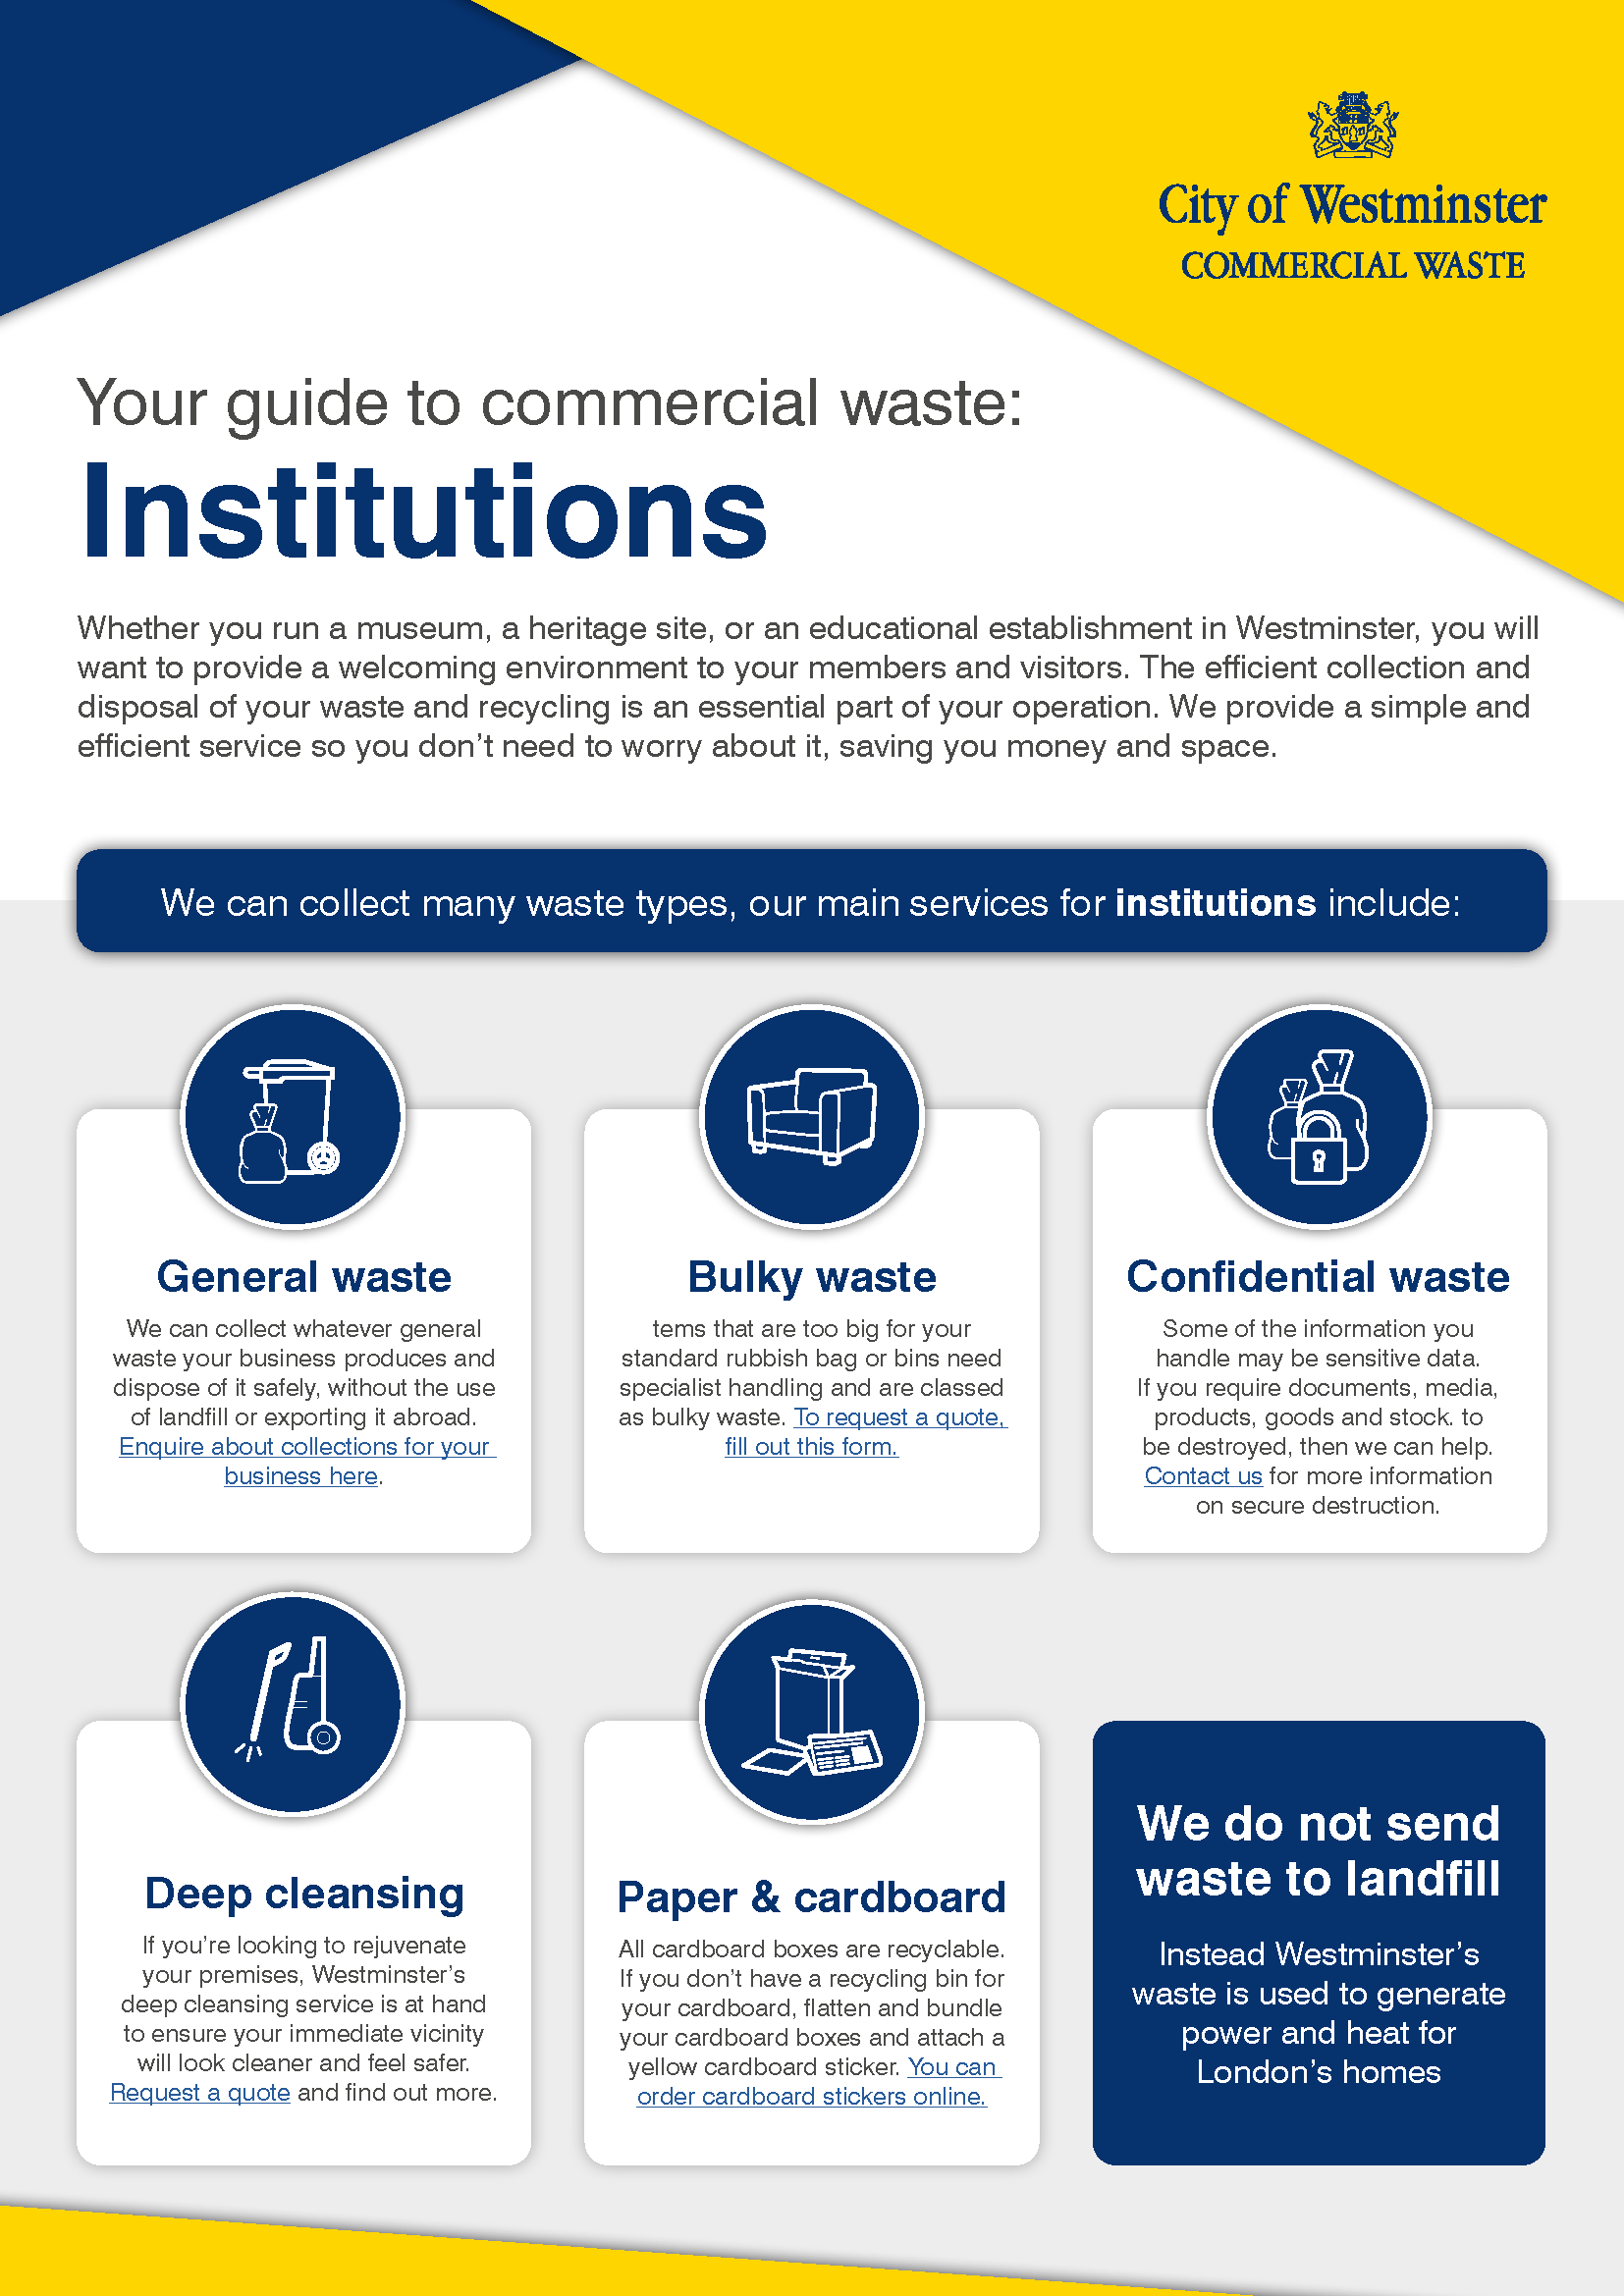 Institutions_Waste_Guide